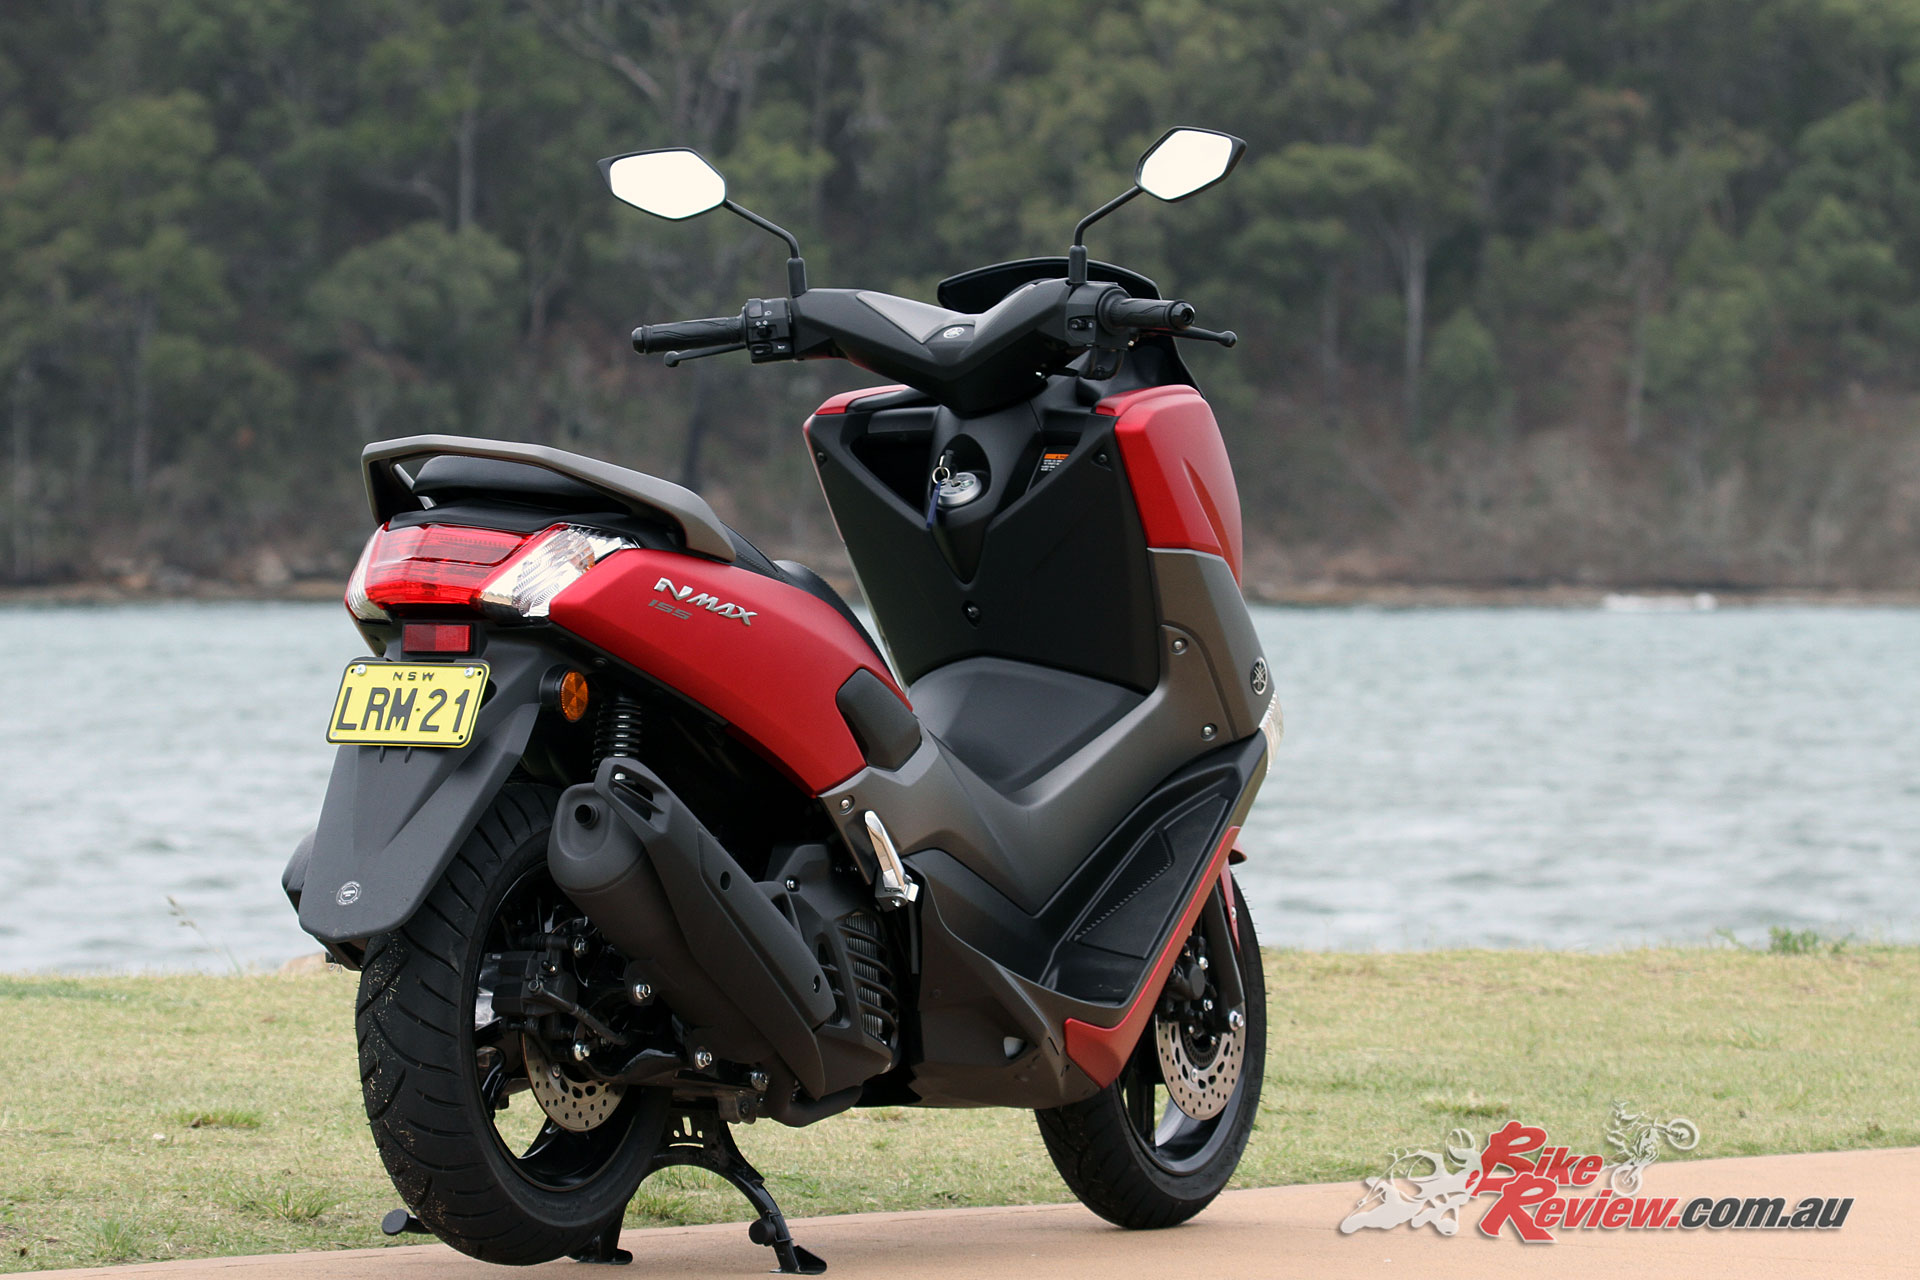 Review: 2018 Yamaha NMAX 155 Scooter - Bike Review